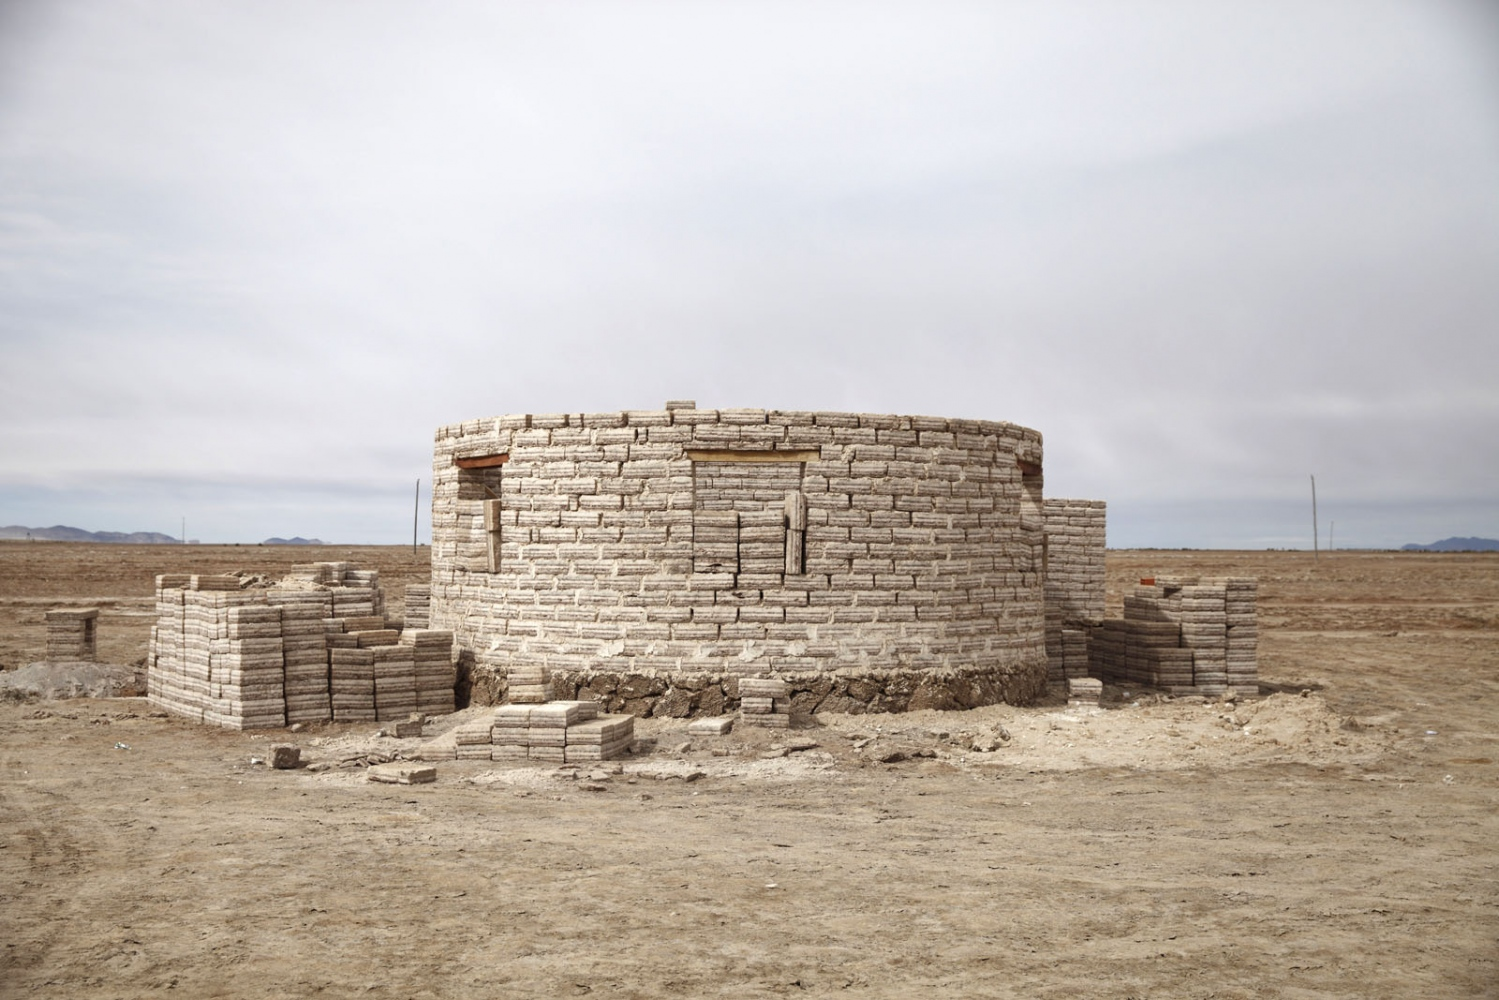 A house structure made solely of salt bricks on the edge of the Salar de Uyuni. The salt bricks are cheaper and easier to repair than regular concrete bricks. Bolivia.